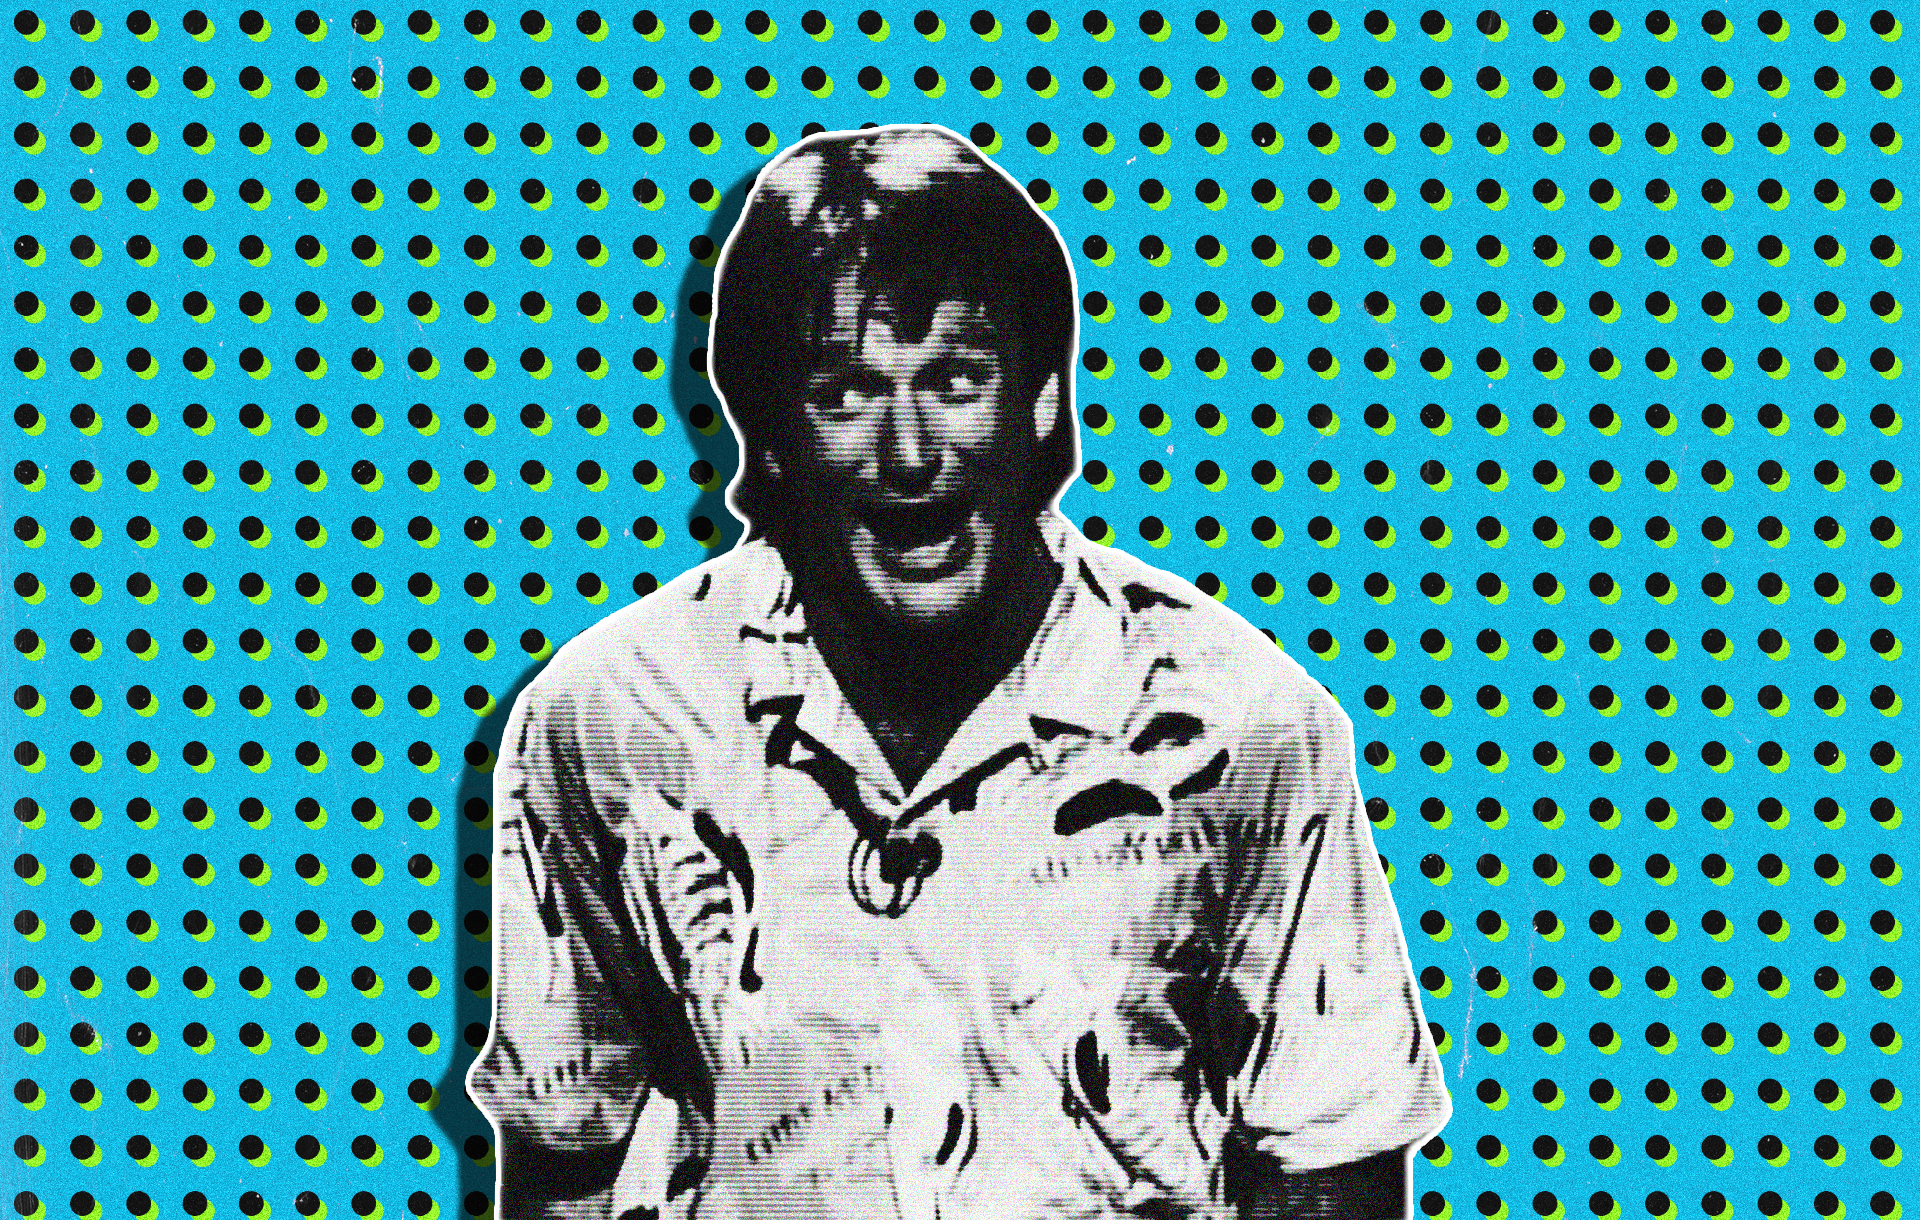 'A Night At The Met': Robin Williams' Stand-Up Comedy Masterpiece Turns 35 | Features | LIVING LIFE FEARLESS